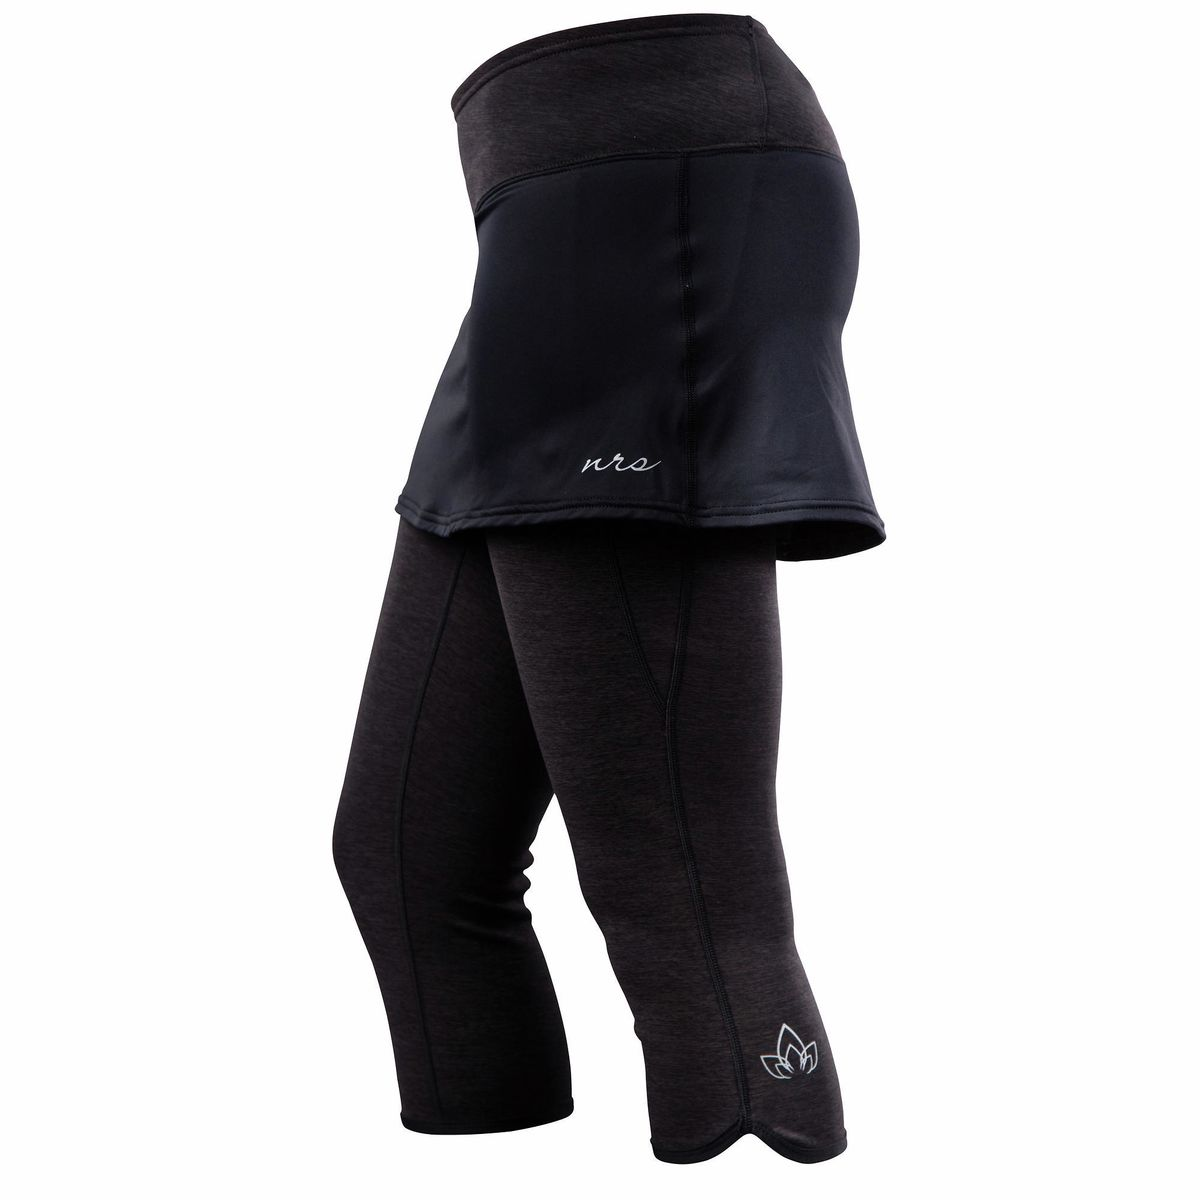 photo: NRS HydroSkin 0.5 Capri Pant with Skirt paddling pant